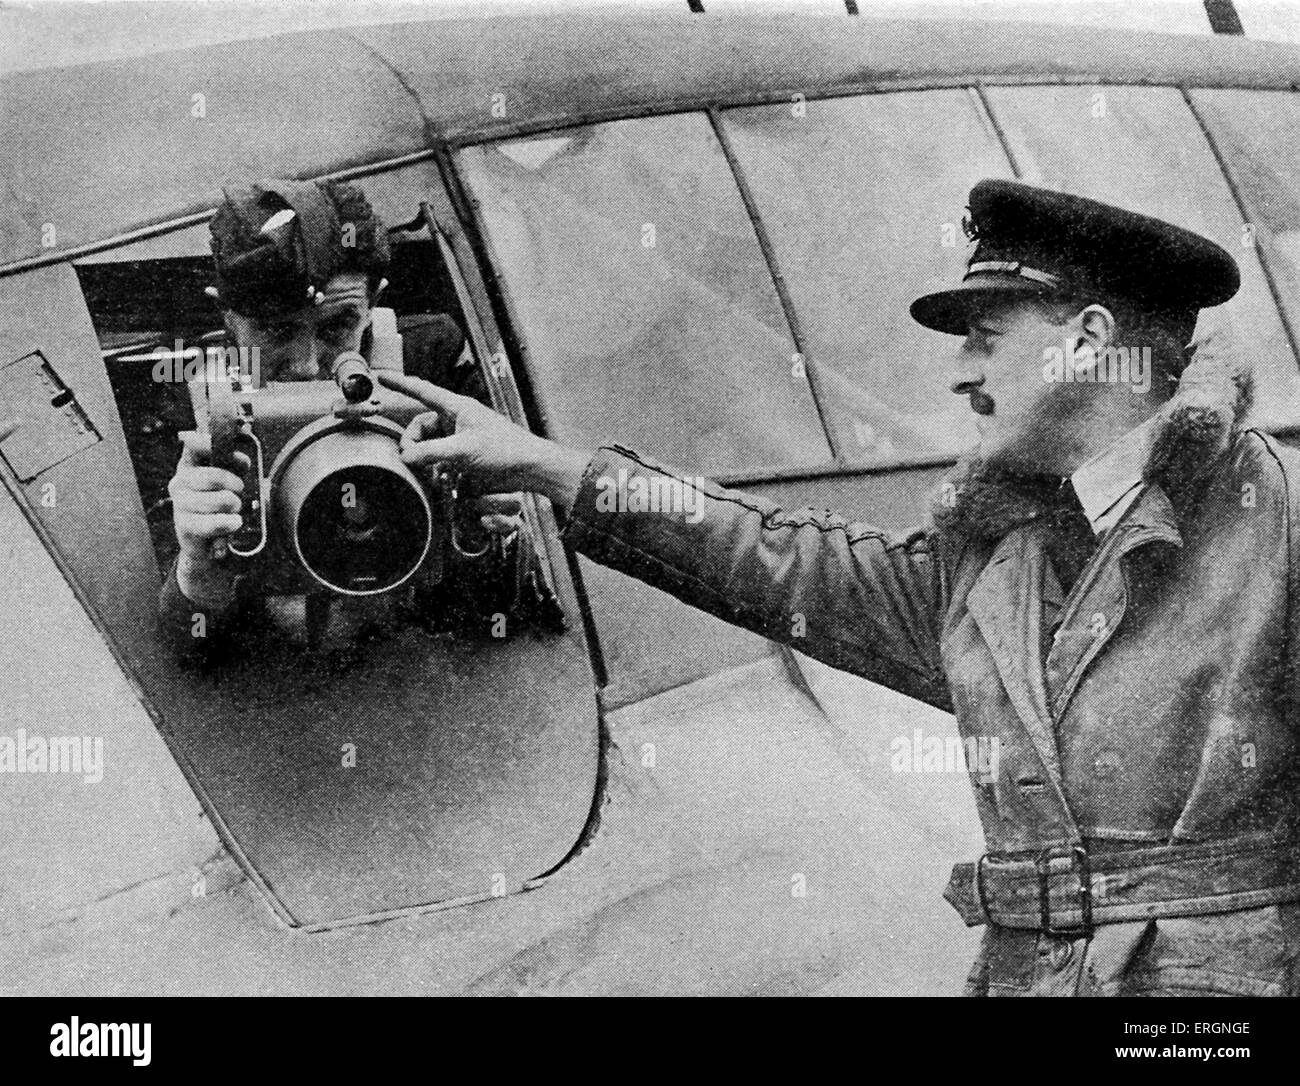 WW2 - Aerial Reconnaissance. Man being instructed how to use an aerial camera on a plane. - Stock Image